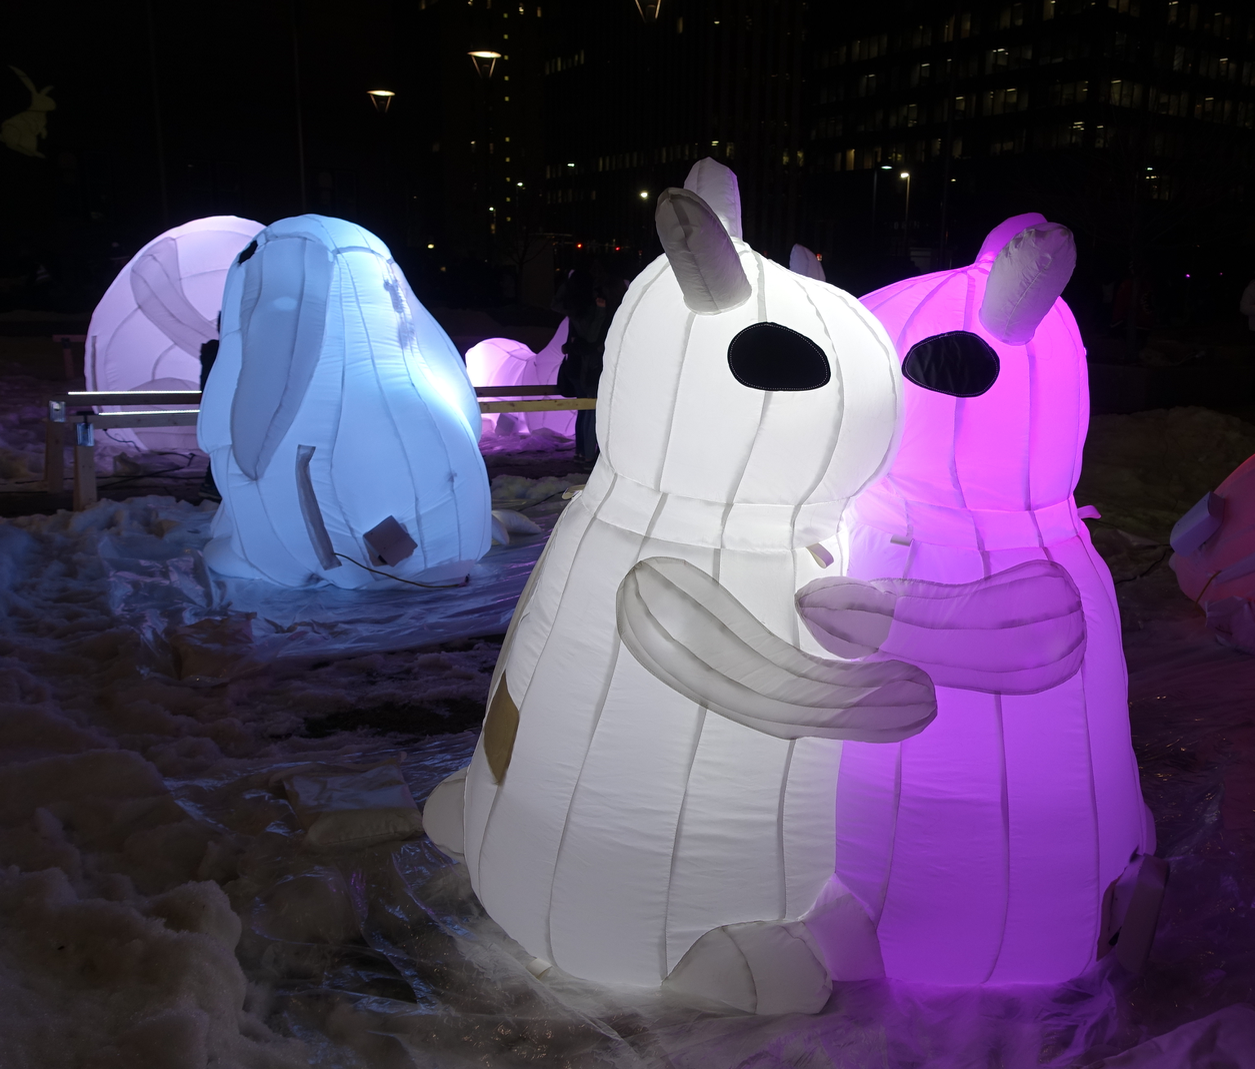 """Nibbles"" by Australia's Amanda Peer, is an installation of cuddly illuminated bunnies that appeals to the toddlers and anyone who is young at heart. Hotchkiss Gardens"